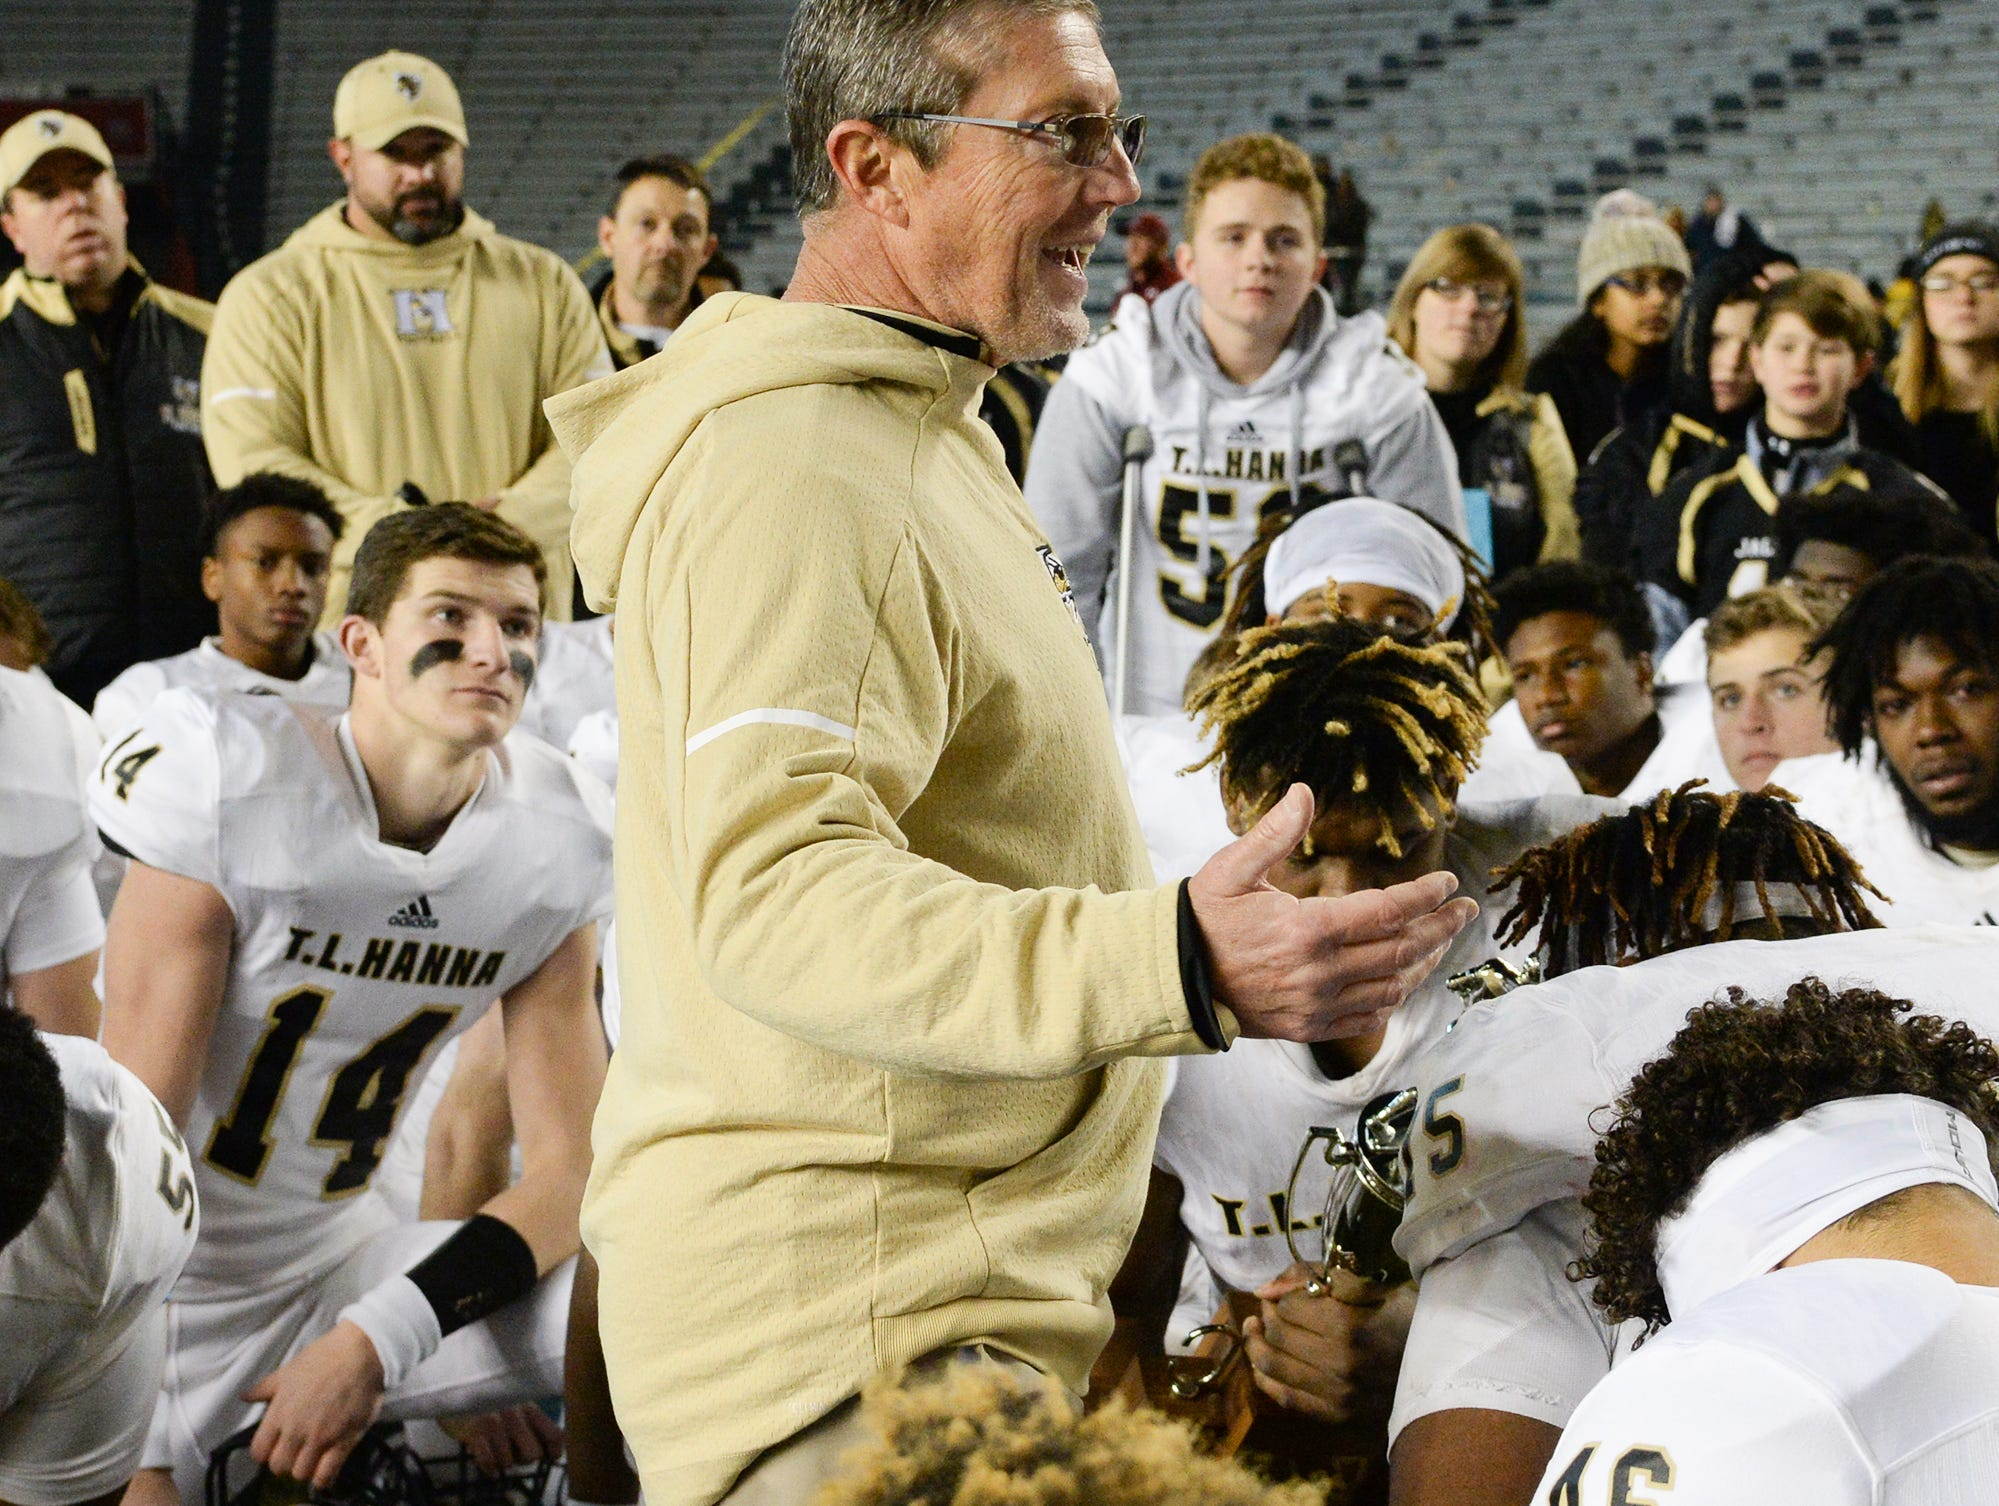 TL Hanna head coach Jeff Herron talks with player after the game of the Class AAAAA state championship game at Williams-Brice Stadium in Columbia Saturday, December 8, 2018.